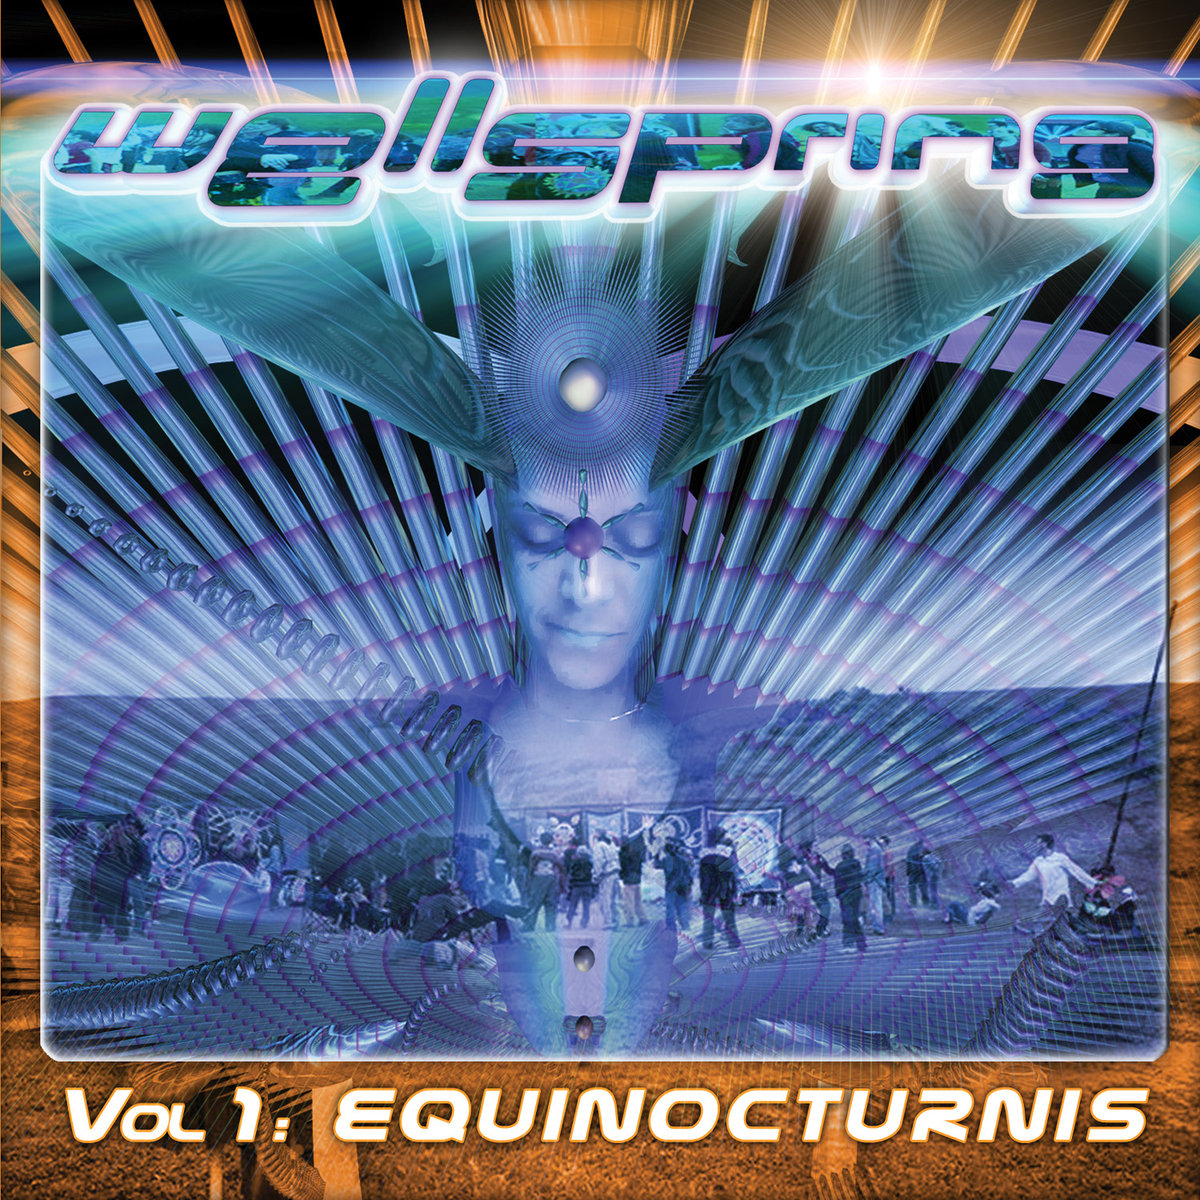 Mystic Luminate (The Loomii) - Freak Factory @ 'Various Artists - Wellspring Vol. 1: Equinocturnis' album (electronic, goa)